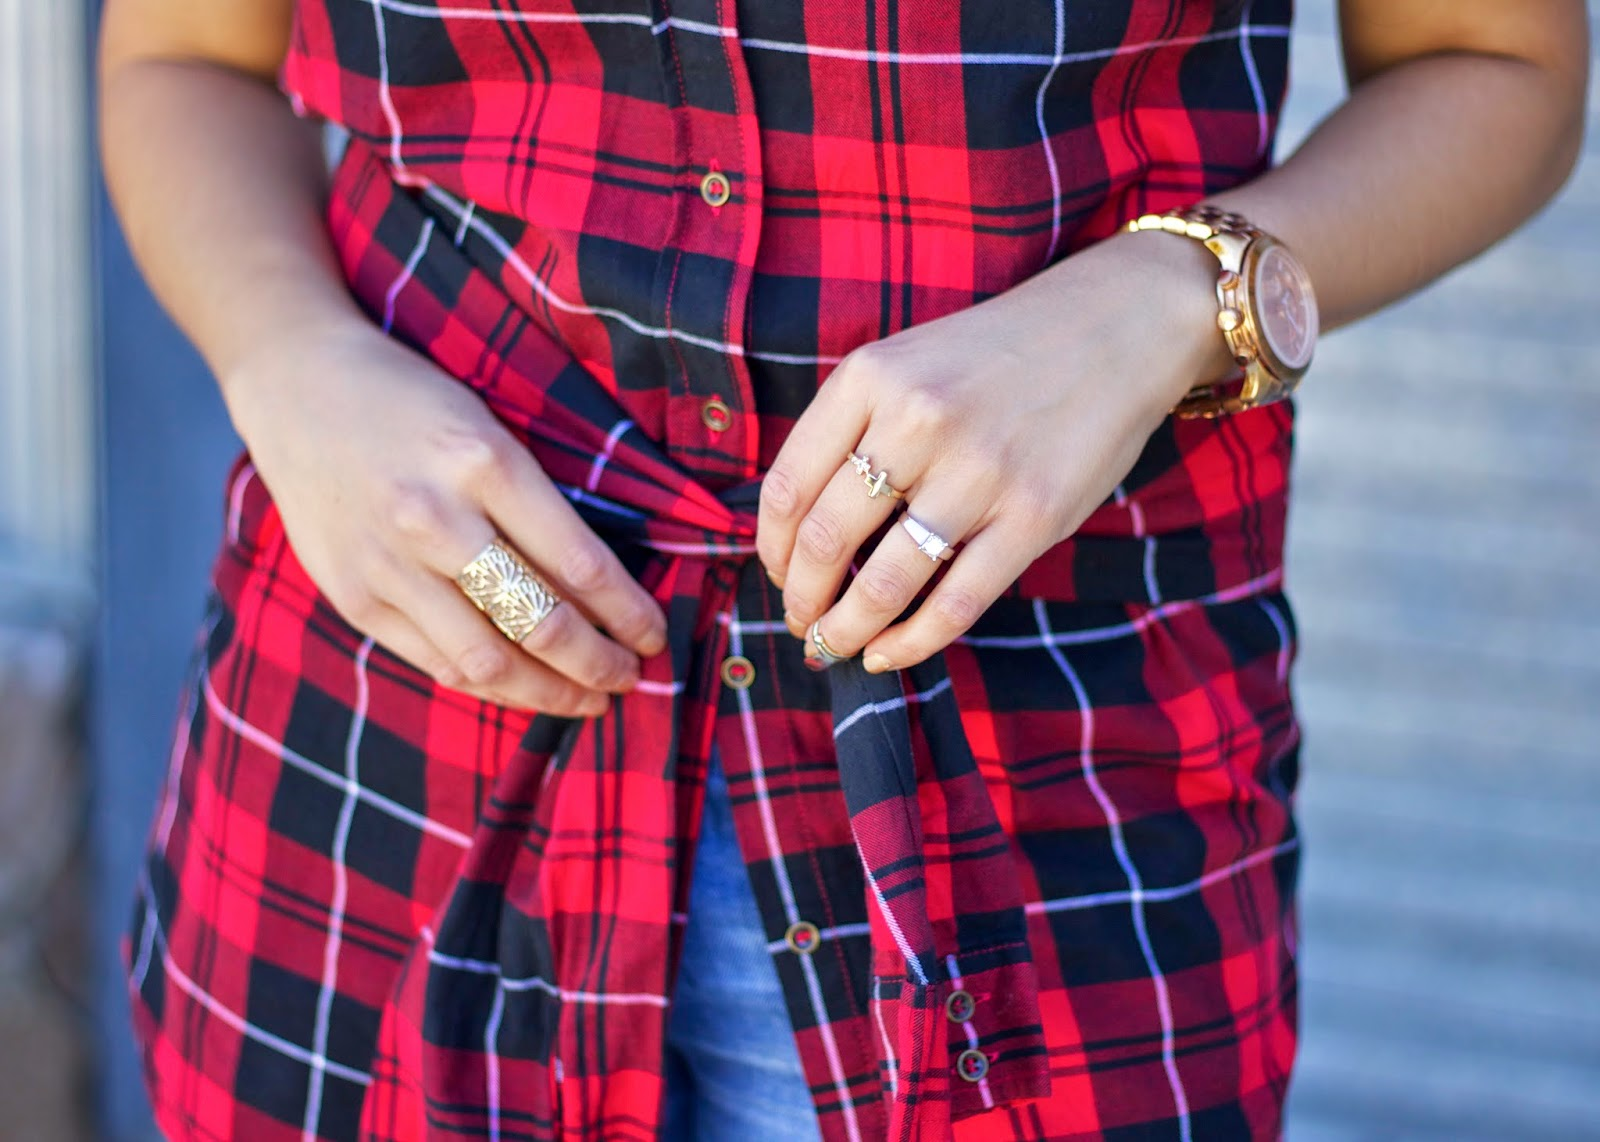 Michael Kors Large Runway watch, gold rings in fashion, fashionable arm candy, arm candy 2014, arm party 2014, arm party for plaid, the who's who of San Diego,